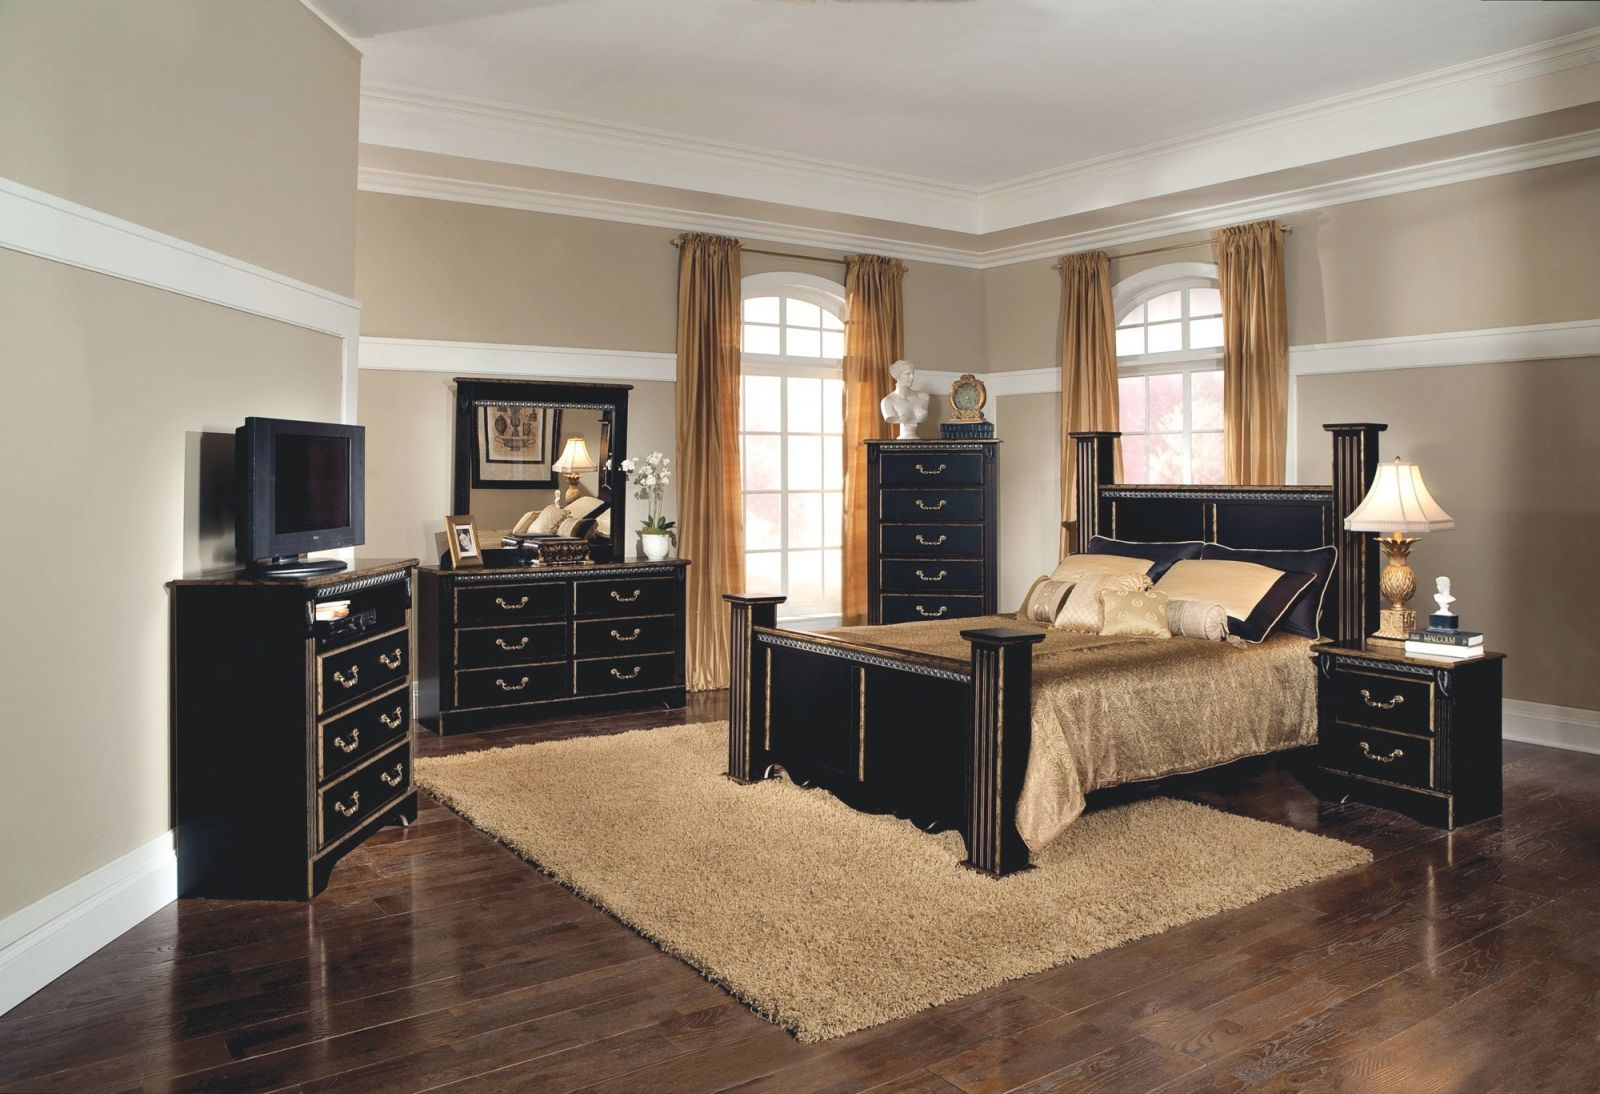 Raymour And Flanigan Clearance Sofas   Taraba Home Review within Inspirational Raymour And Flanigan Living Room Sets